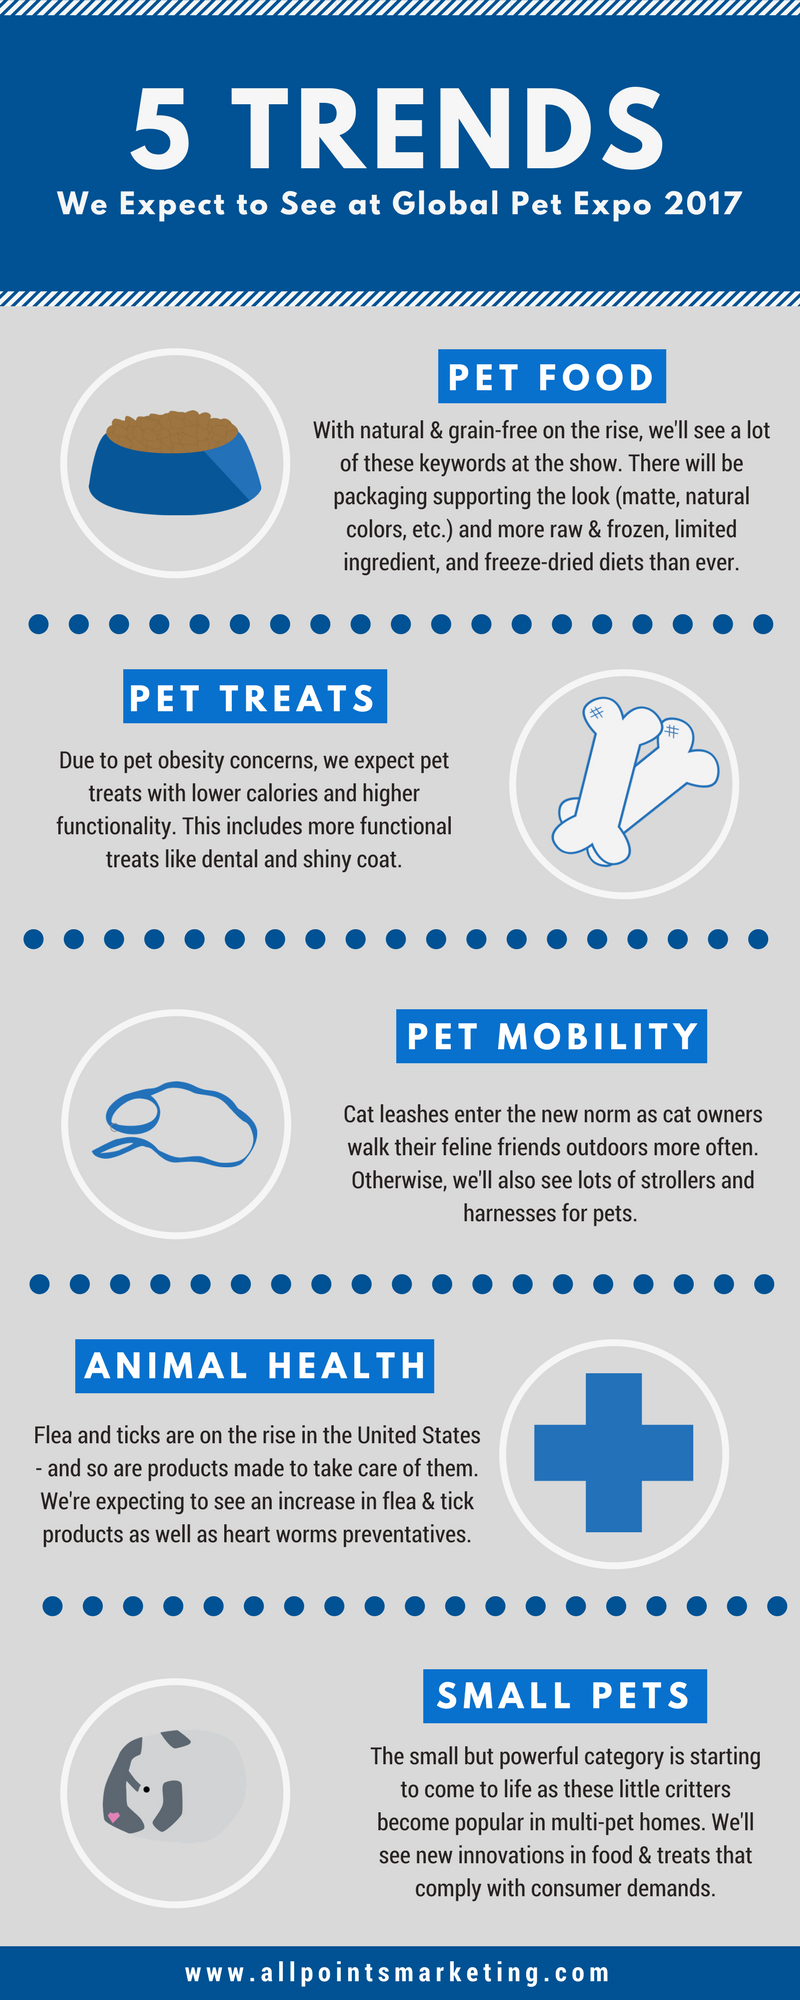 5-trends-global-pet-expo-2017-infographic.png